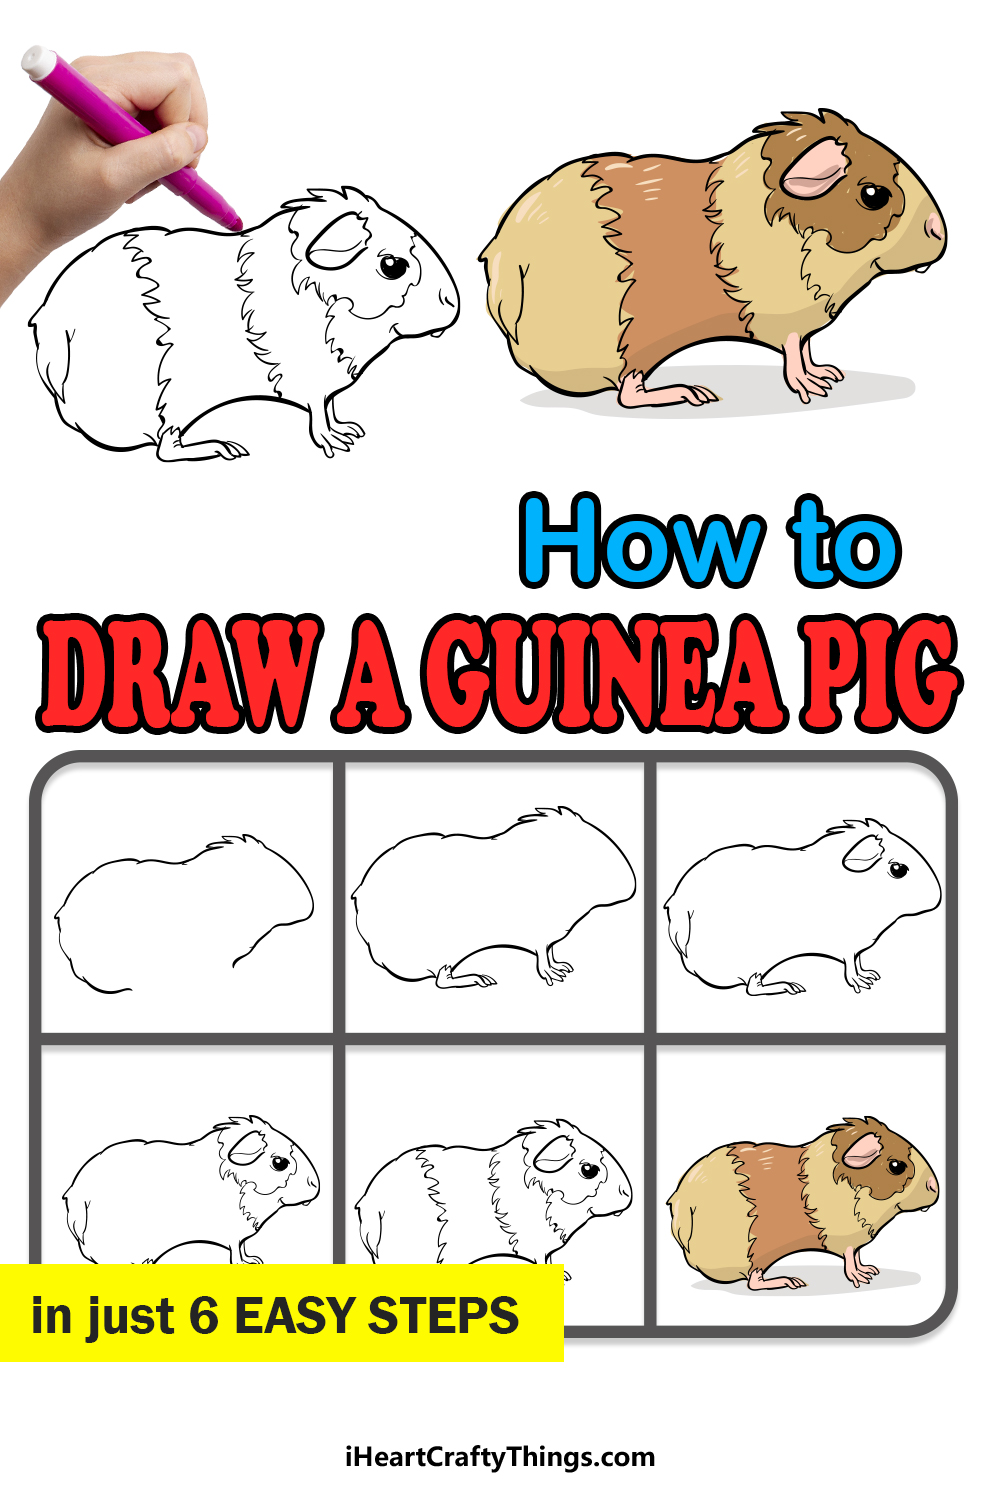 how to draw a guinea pig in 6 easy steps